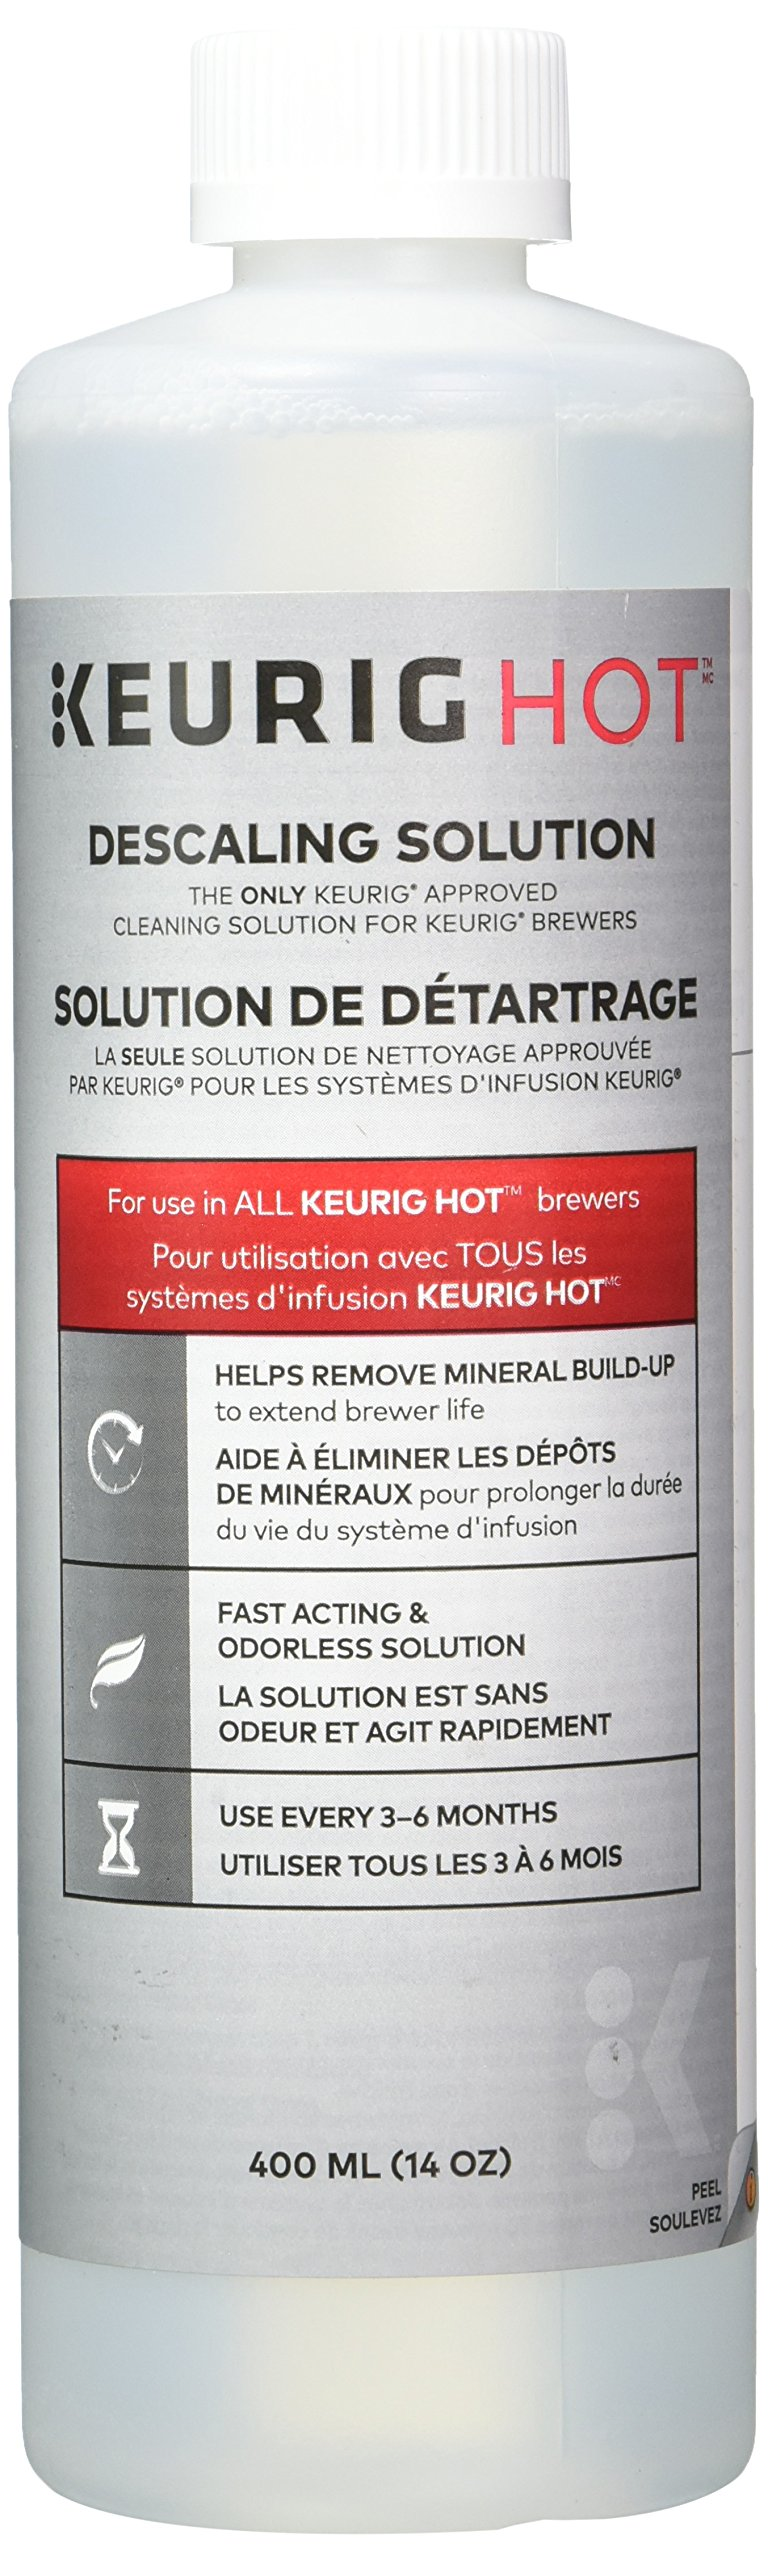 Keurig Descaling Solution For All Keurig 2.0 and 1.0 K-Cup Pod Coffee Makers by Keurig